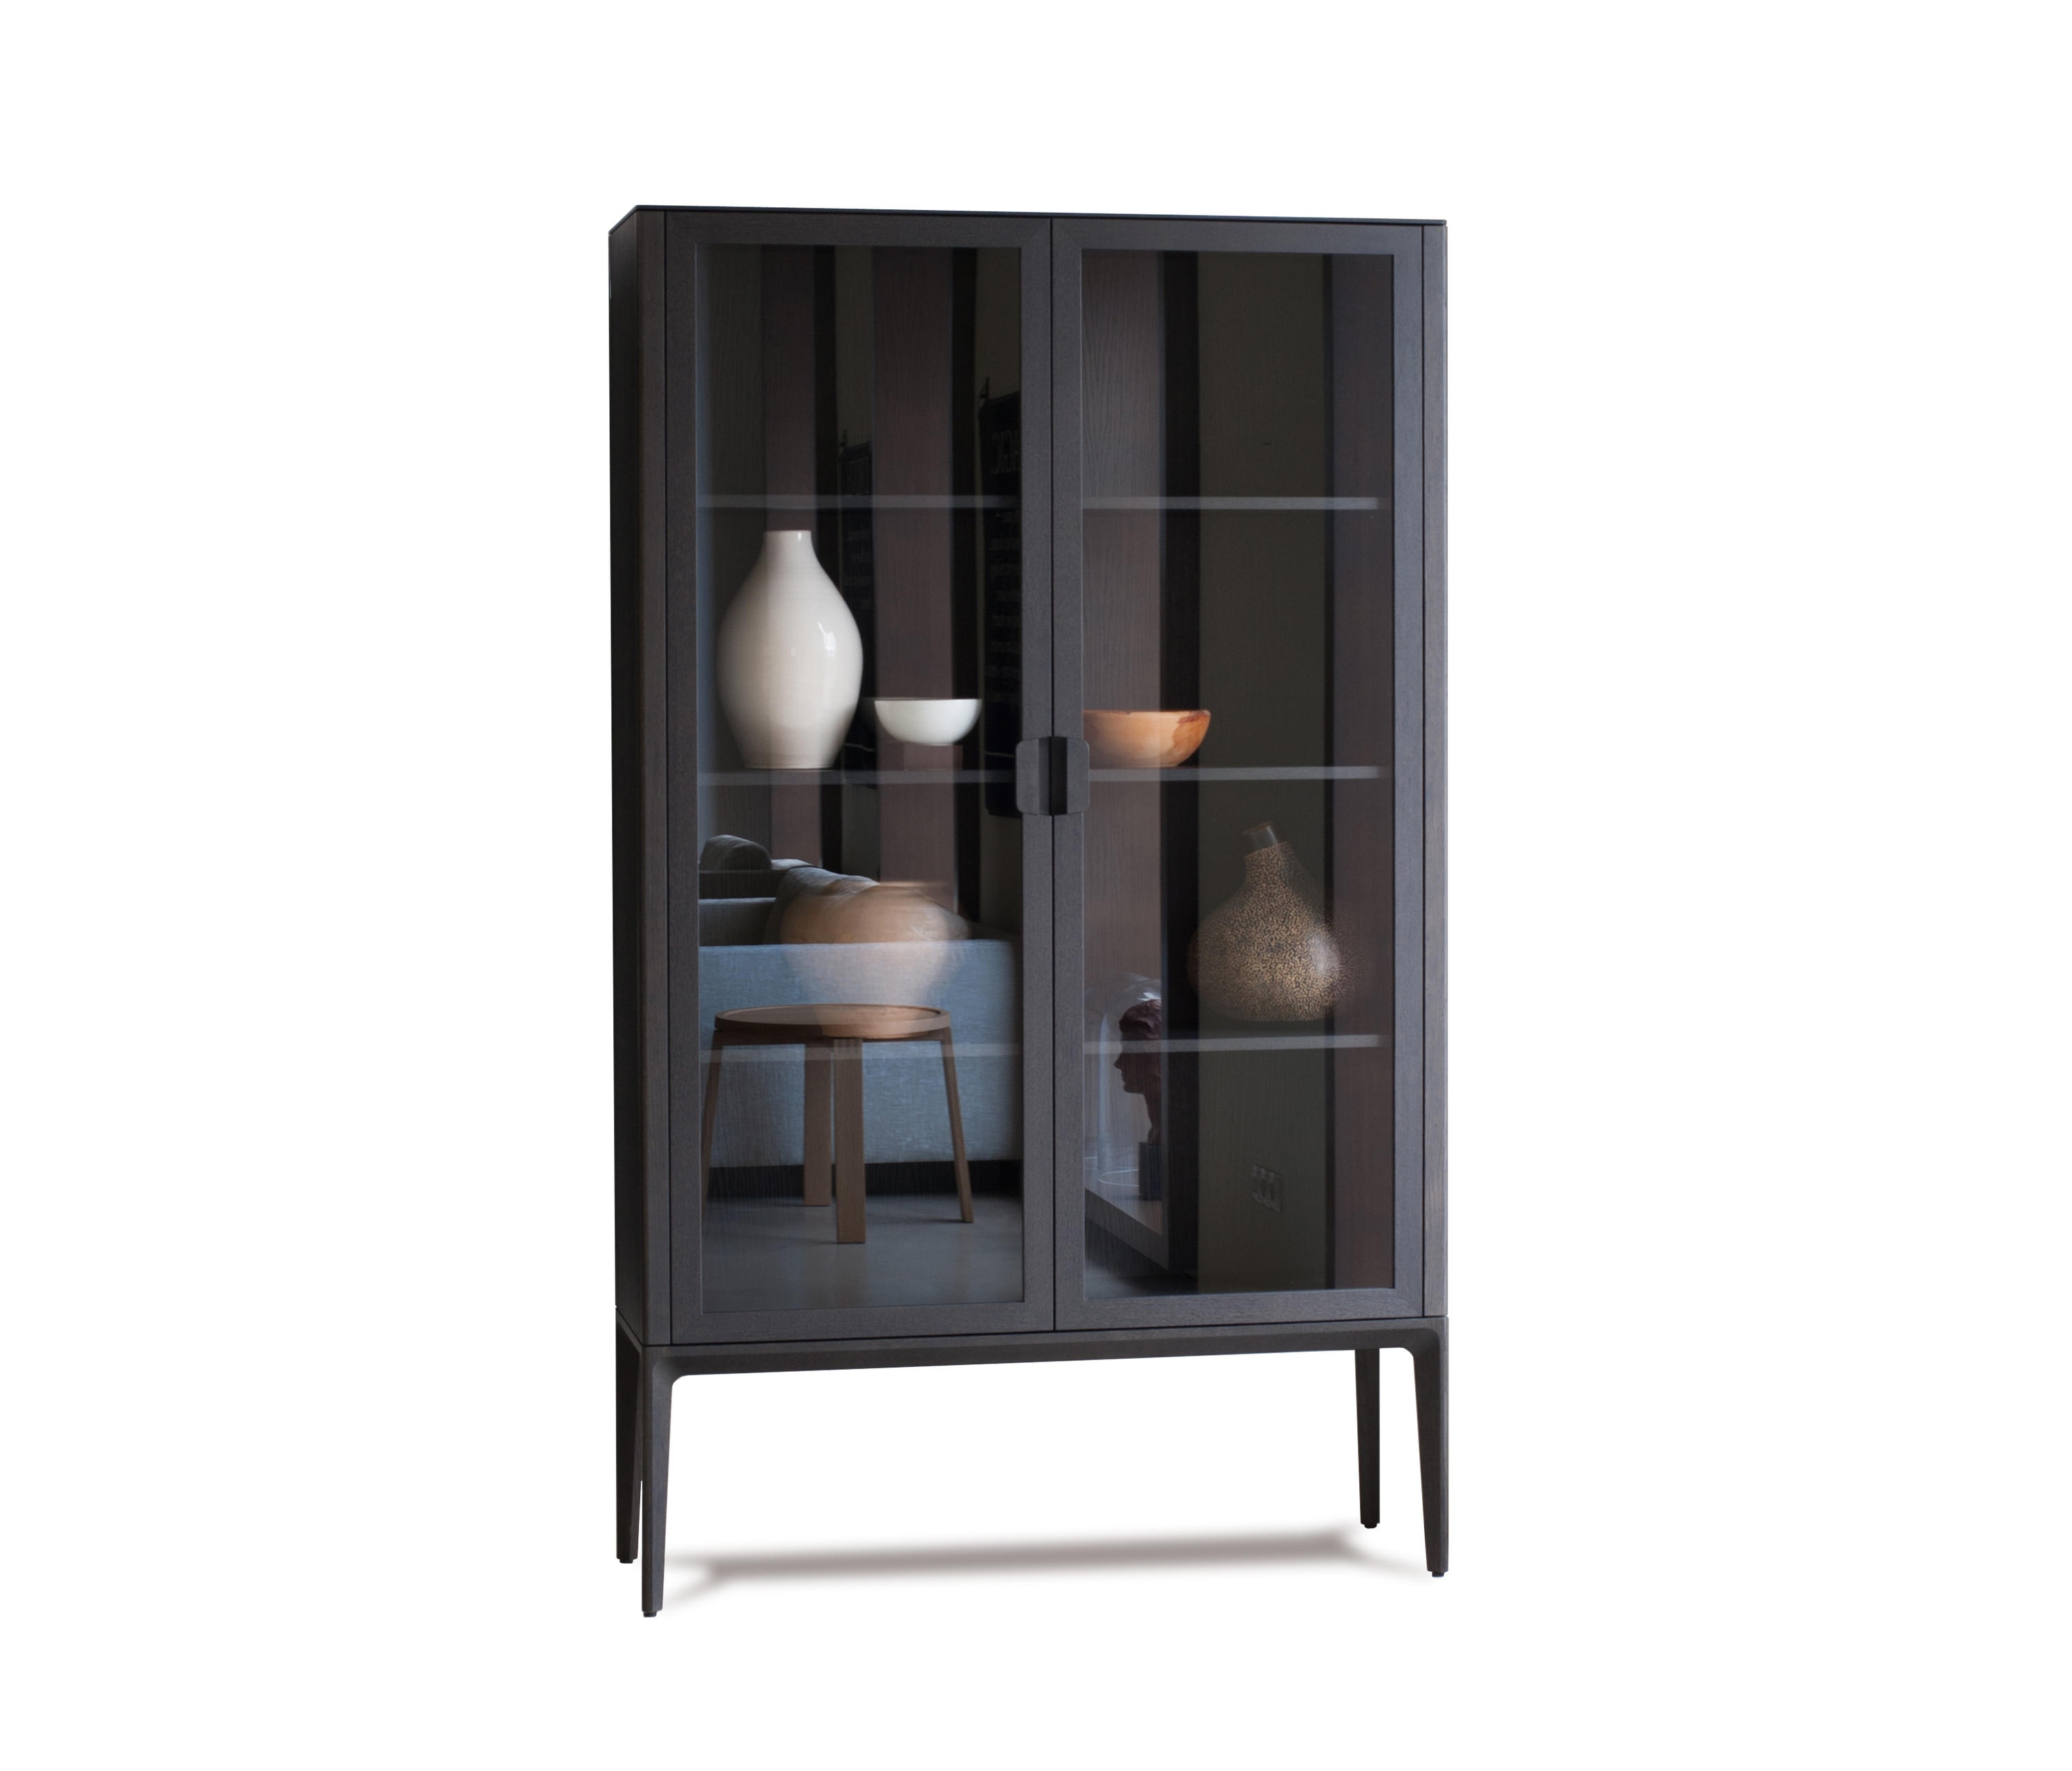 vit ria display cabinet display cabinets from neue wiener werkst tte architonic. Black Bedroom Furniture Sets. Home Design Ideas